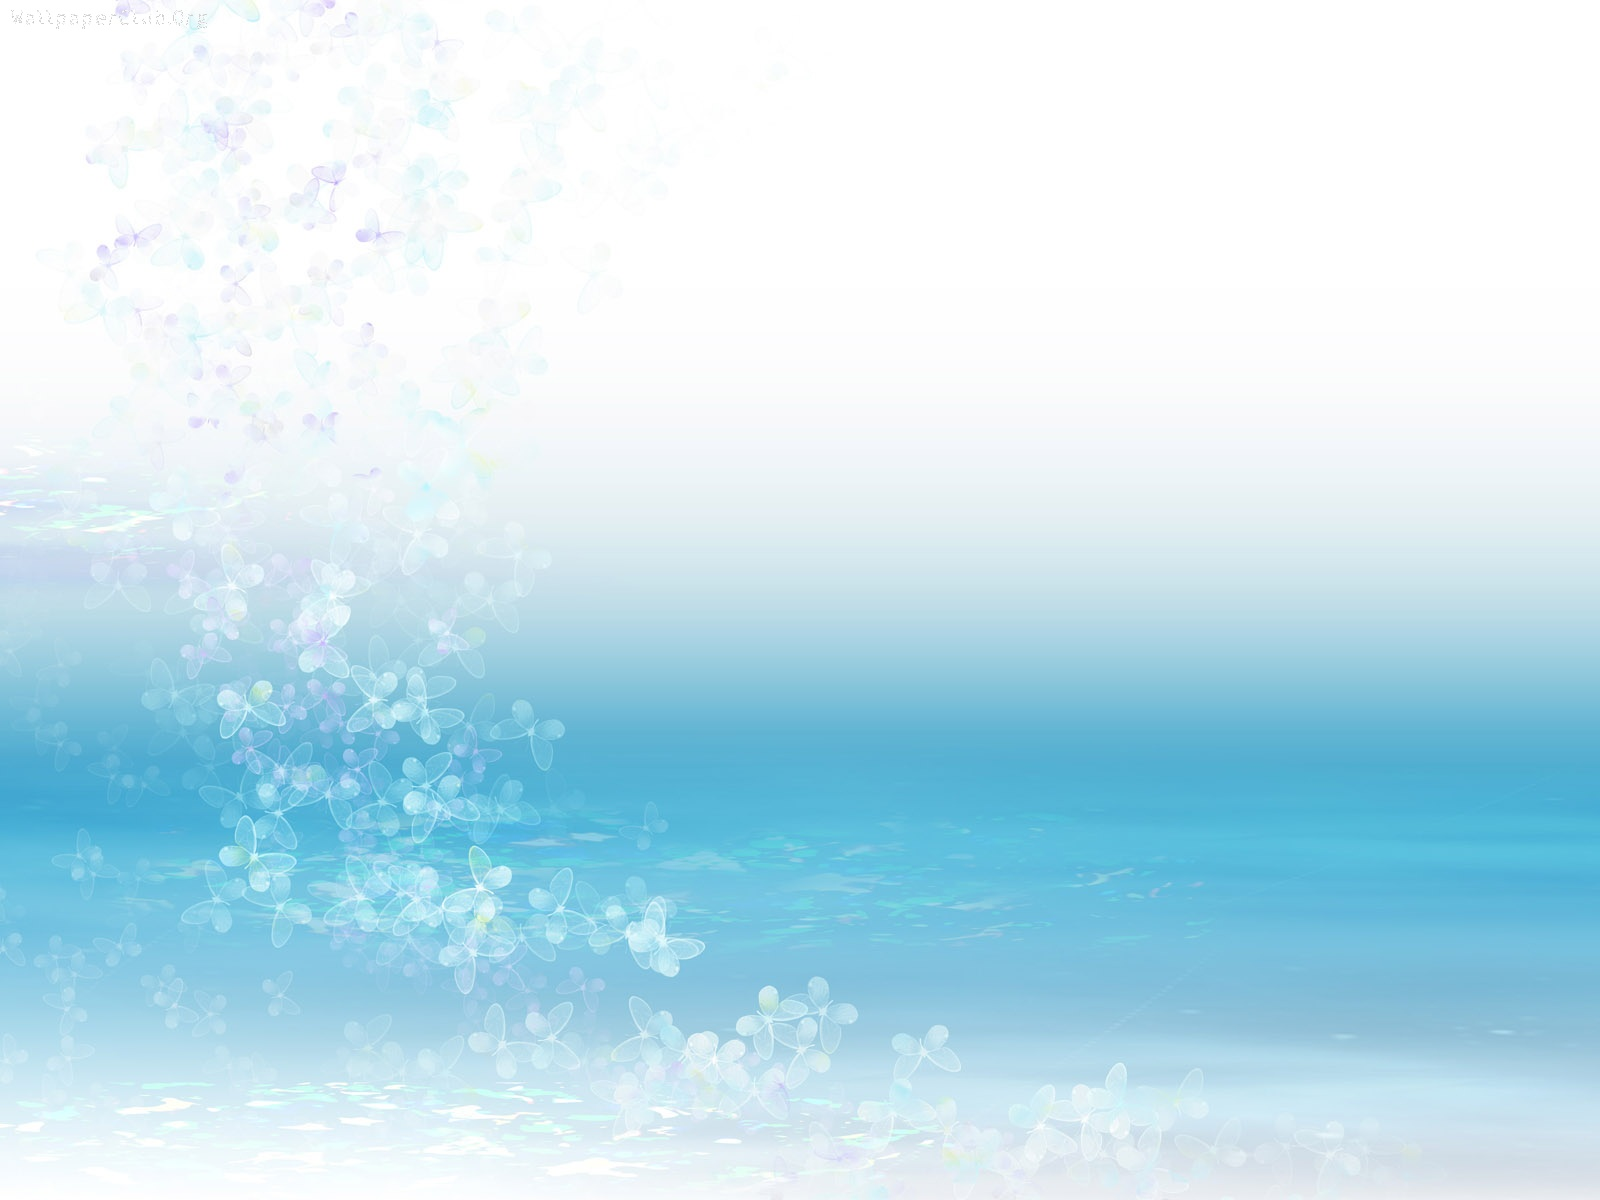 Wallpapers by Valdazzar 4 plain backgrounds 1 Olympic games 1600x1200